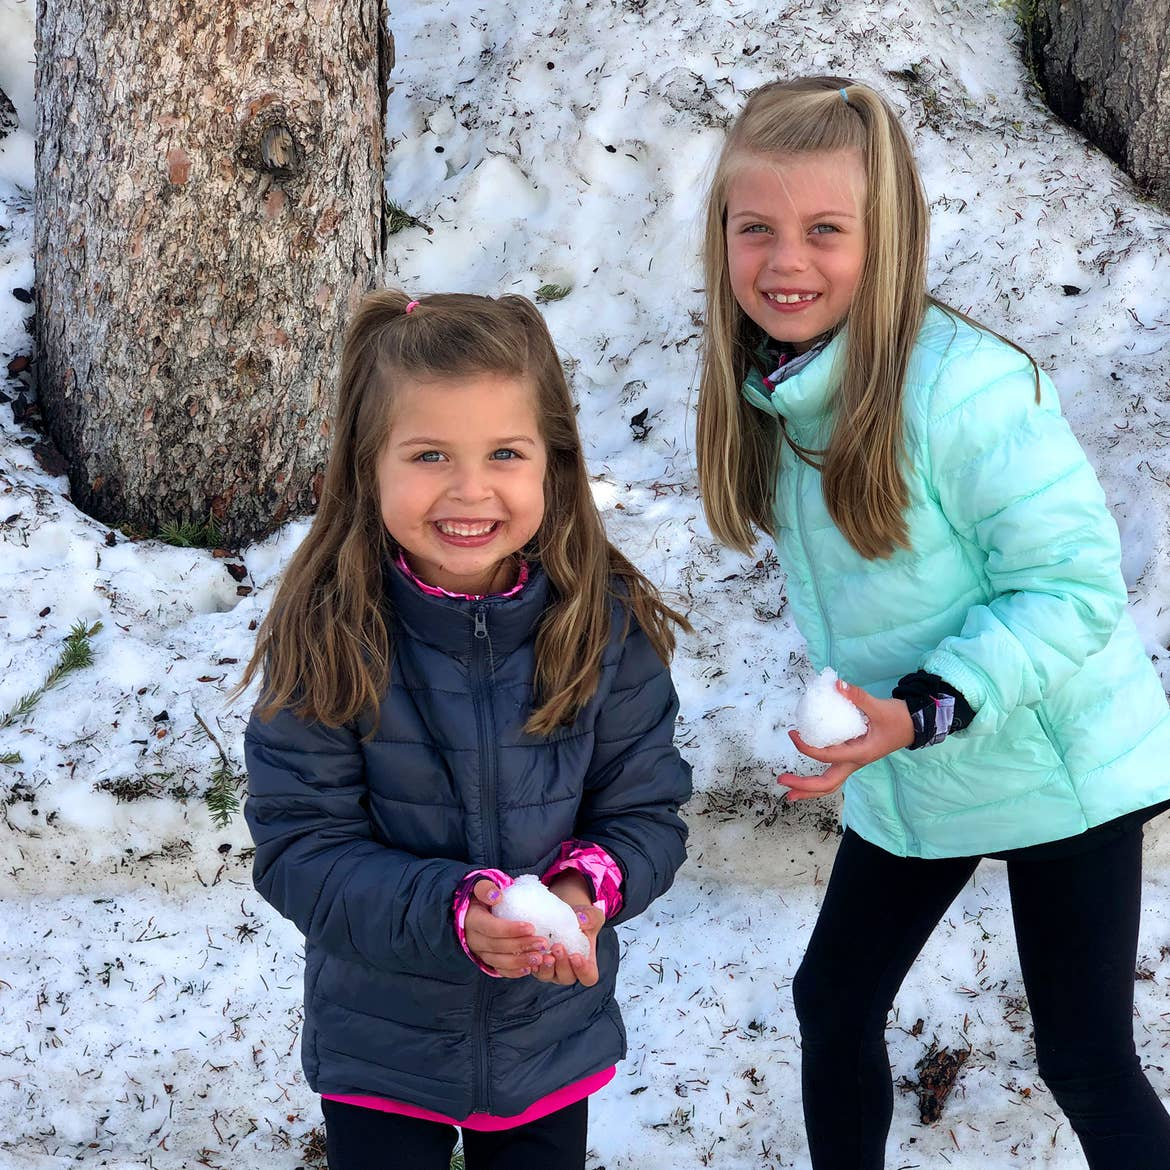 Author, Chris Johnstons' daughters, Kyndall (right), and Kyler (left) play in the snow at Mt. Washburn wearing winter coats.